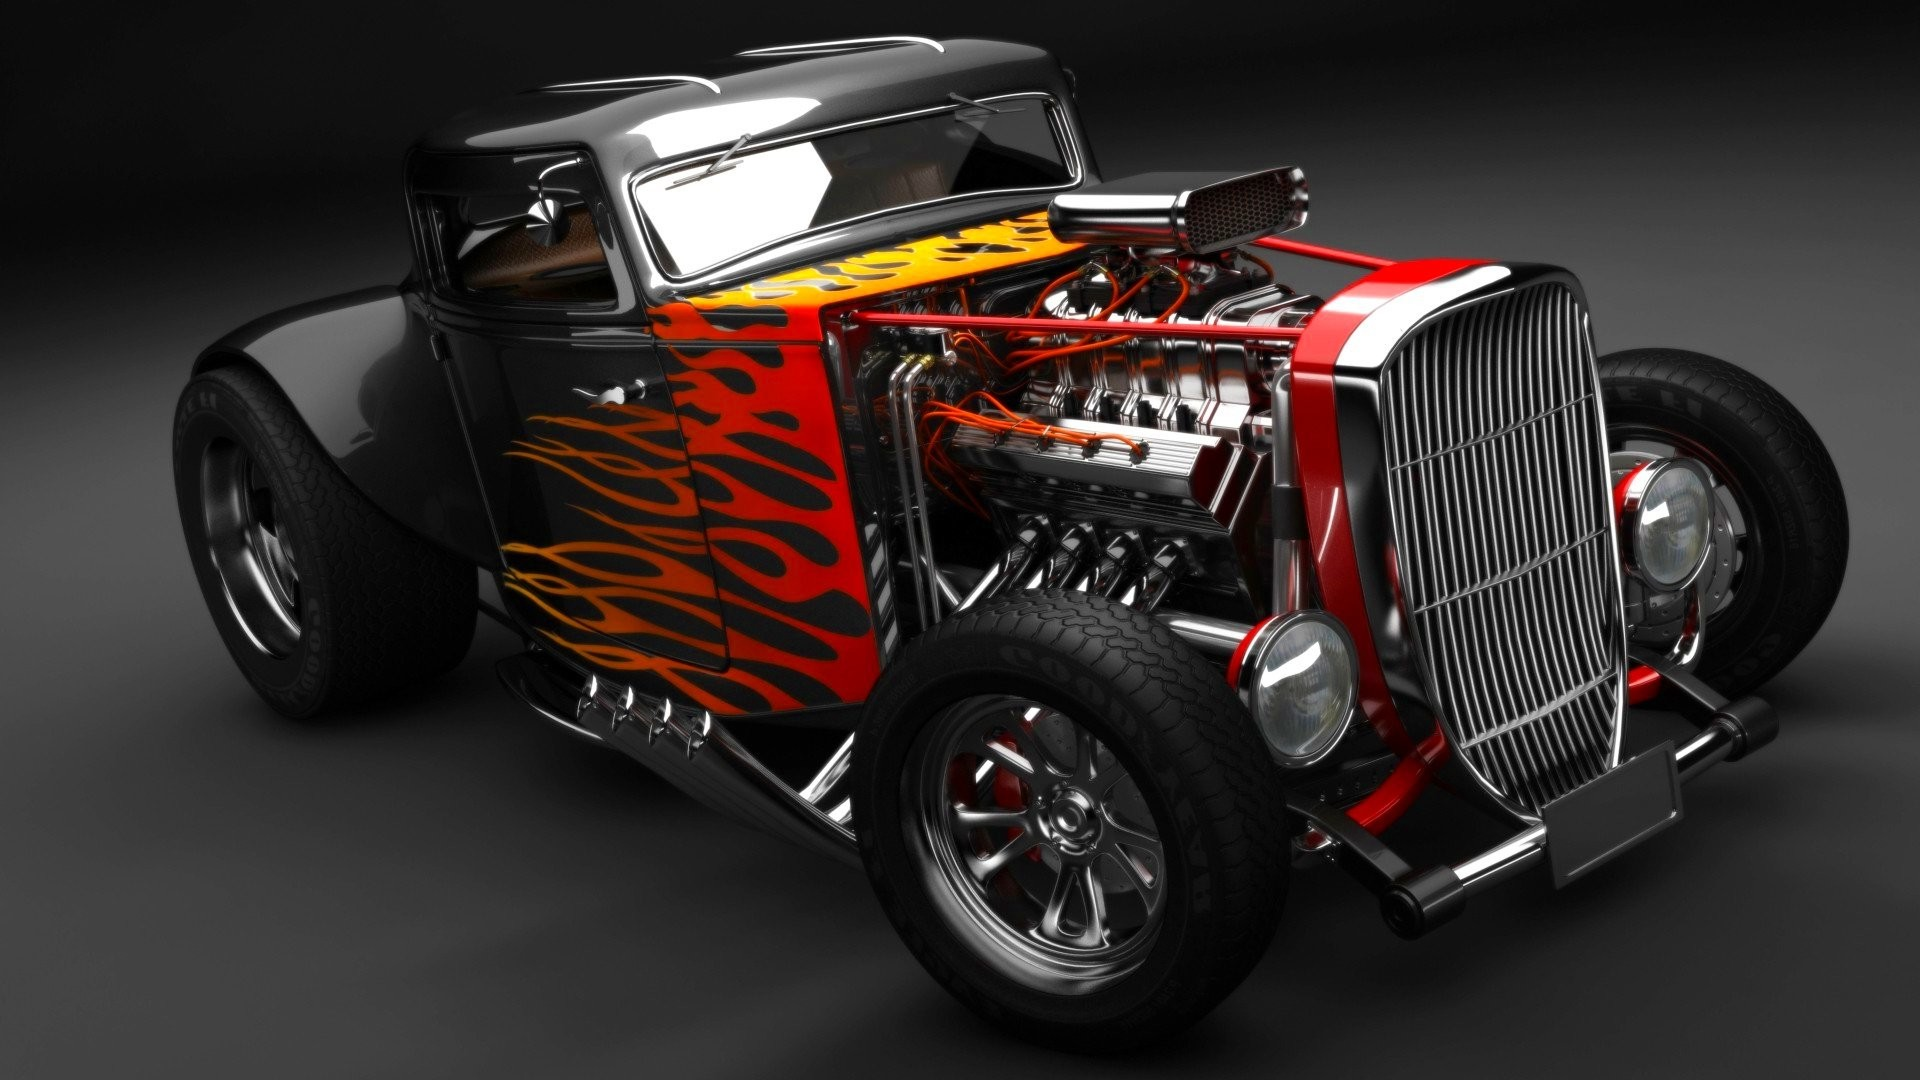 Hot Rods Wallpapers 62 Images